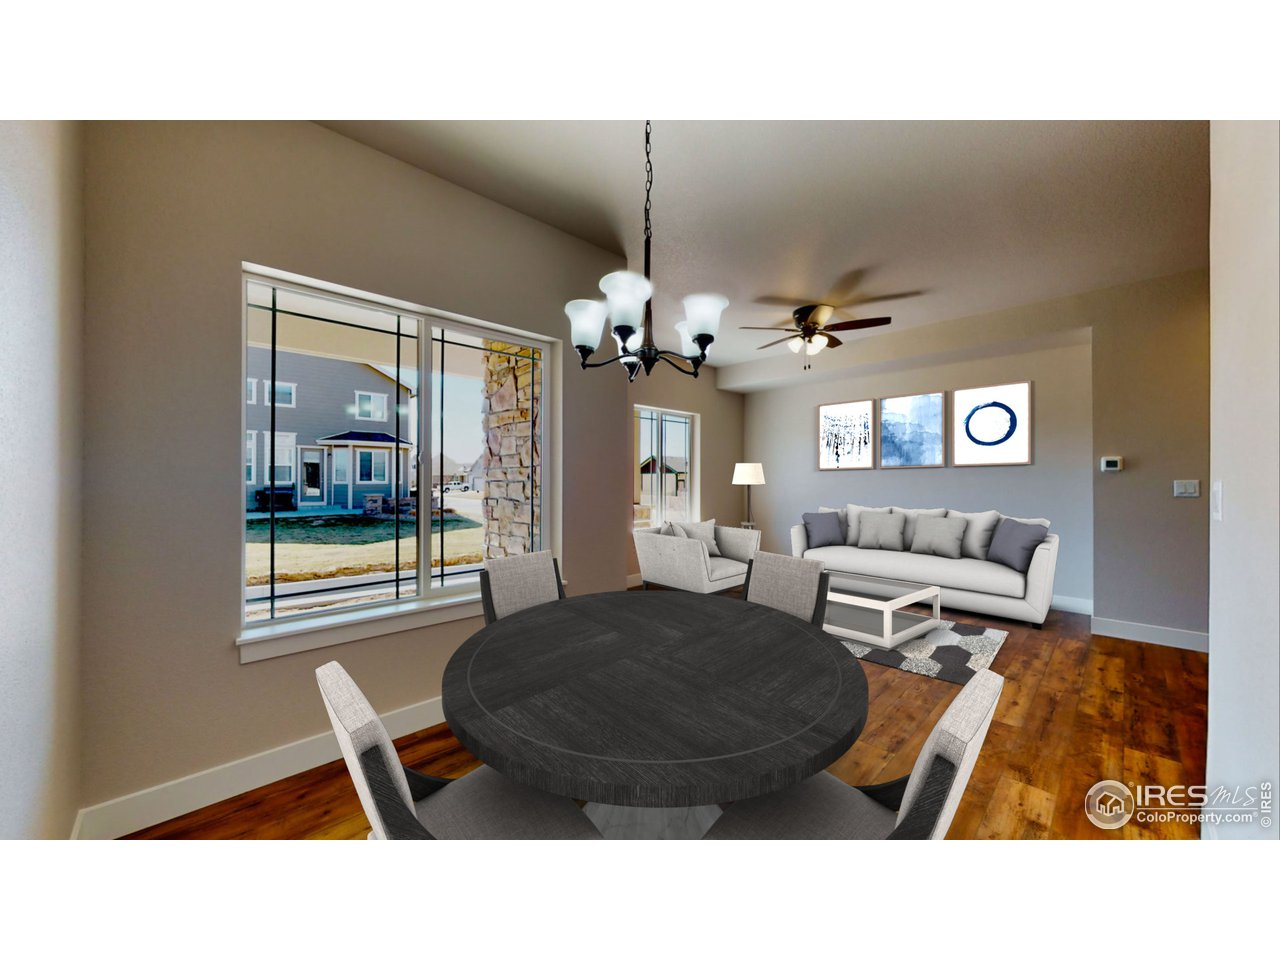 Poudre Floor Plan Available Now!